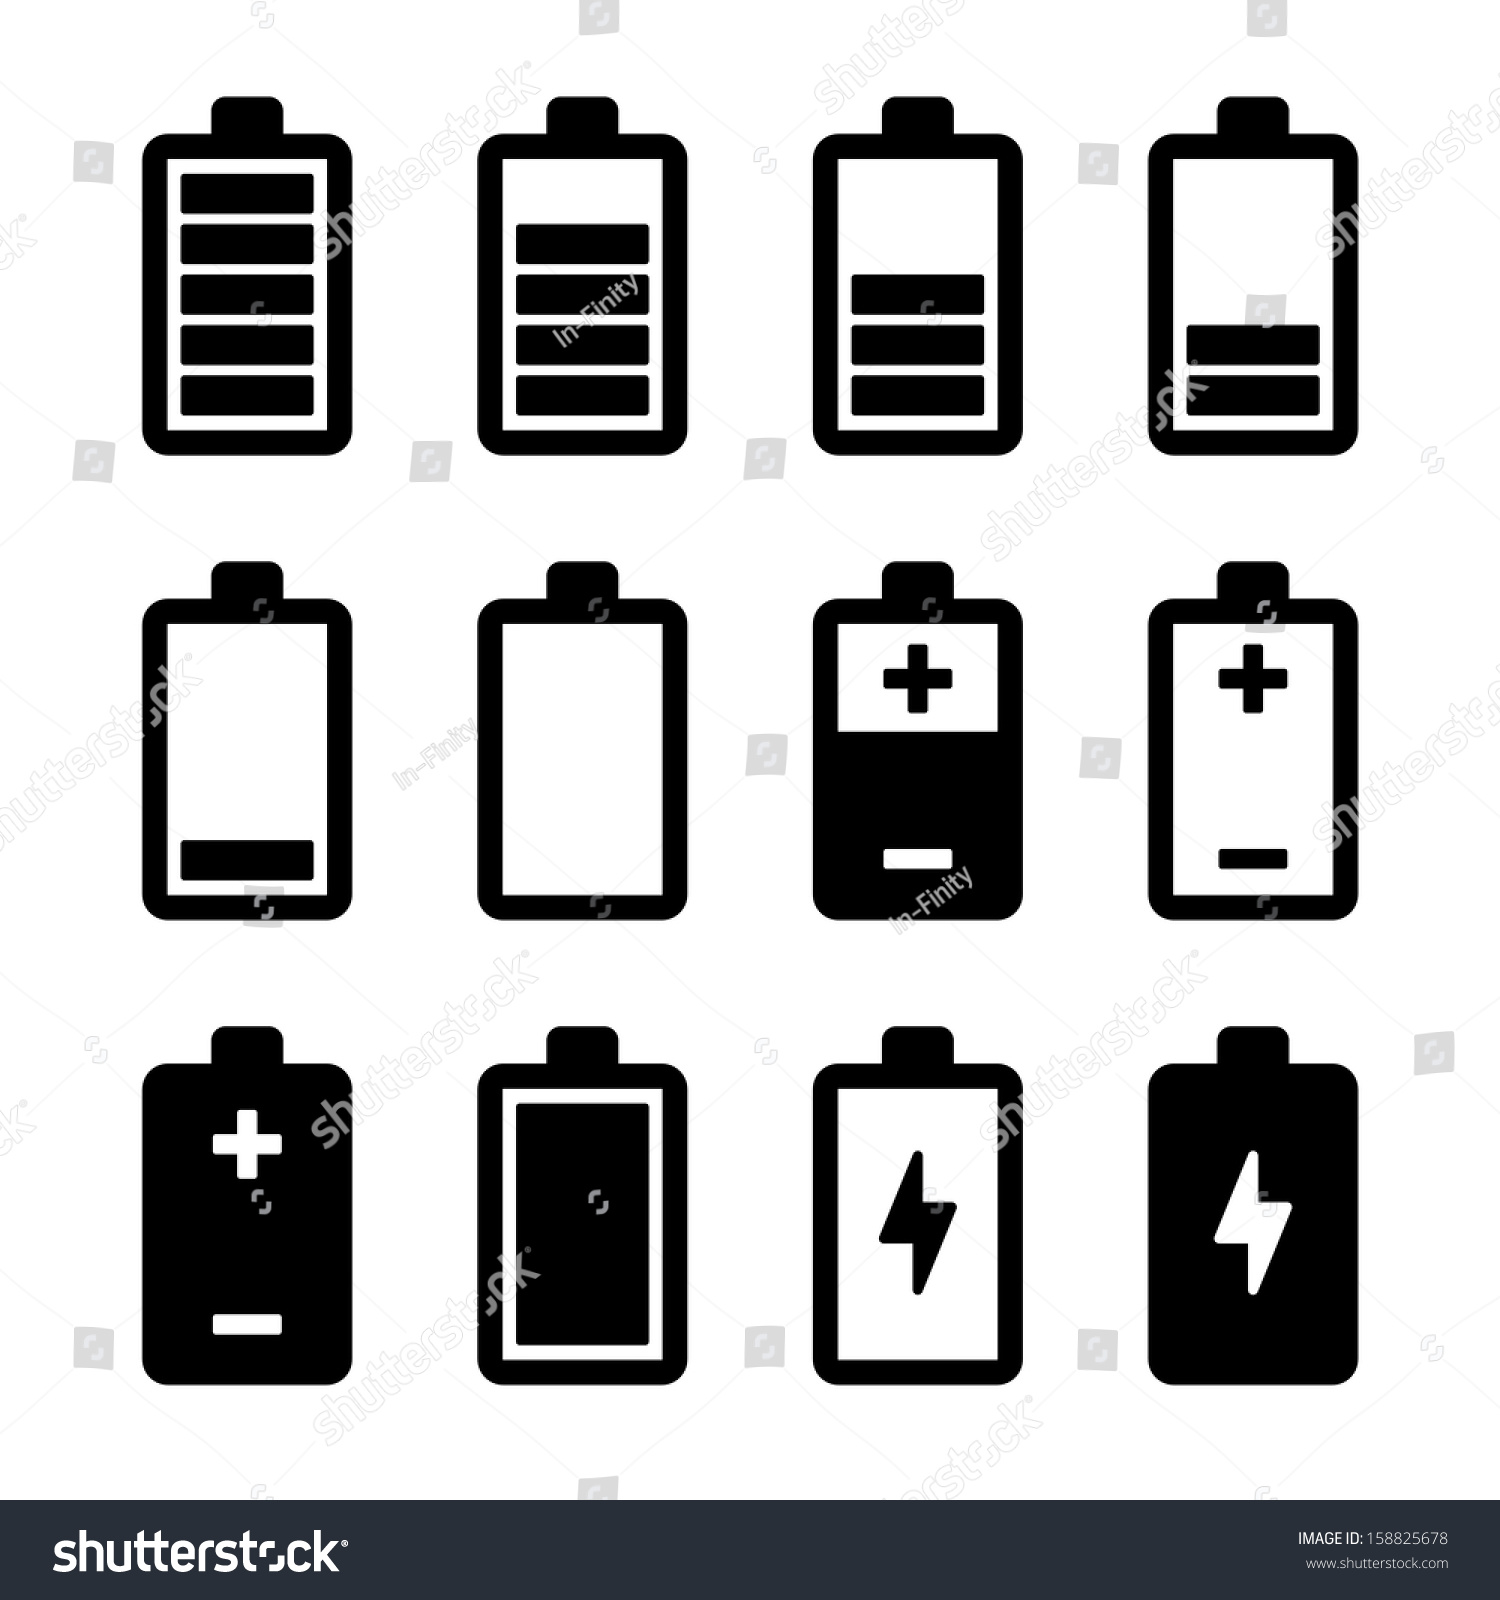 Battery Symbol Iphone Battery Icons Set Stock Vector 158825678 Shutterstock